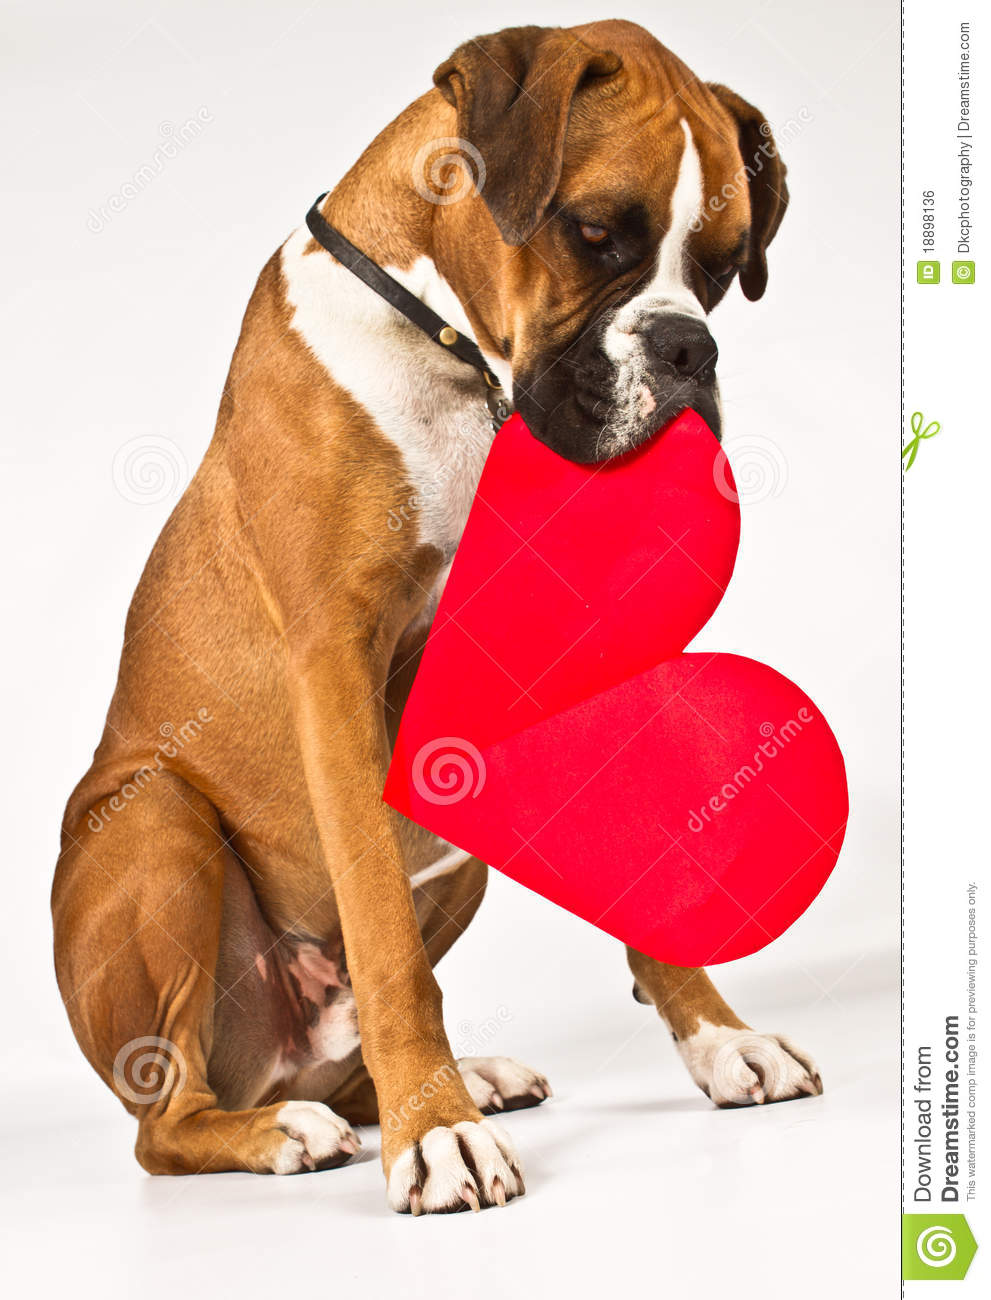 Boxer Dog Heart Image Wiring Diagrams Solar Power Inverter T K Hareendran 4047 Inverters Chargers With A Stock Photo Of Sitting 18898136 Rh Dreamstime Com Slogans